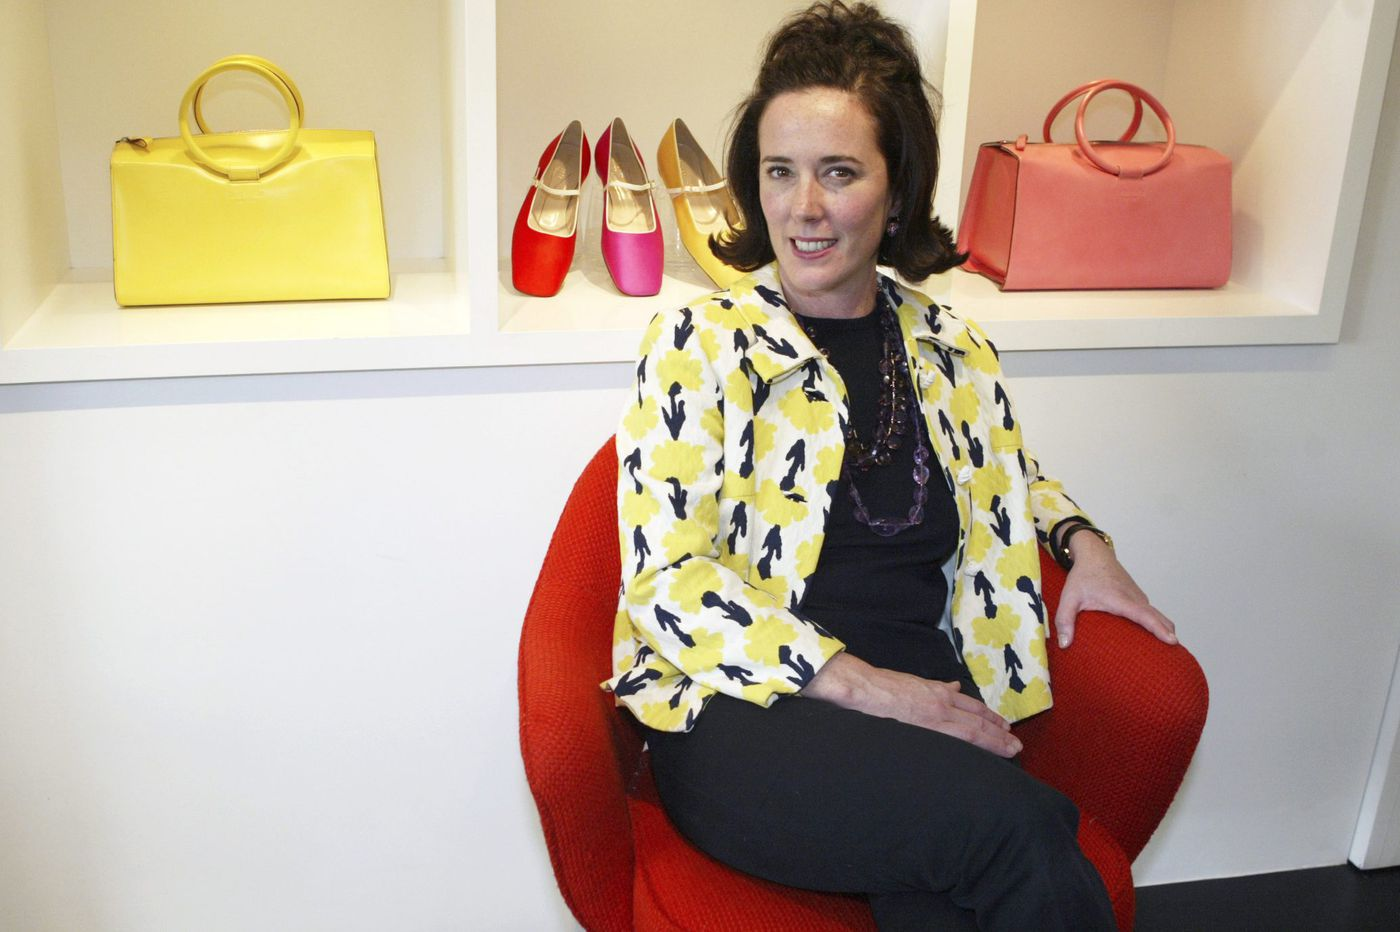 Kate Spade's suicide: Another example of how the media fails people with mental health issues   Perspective